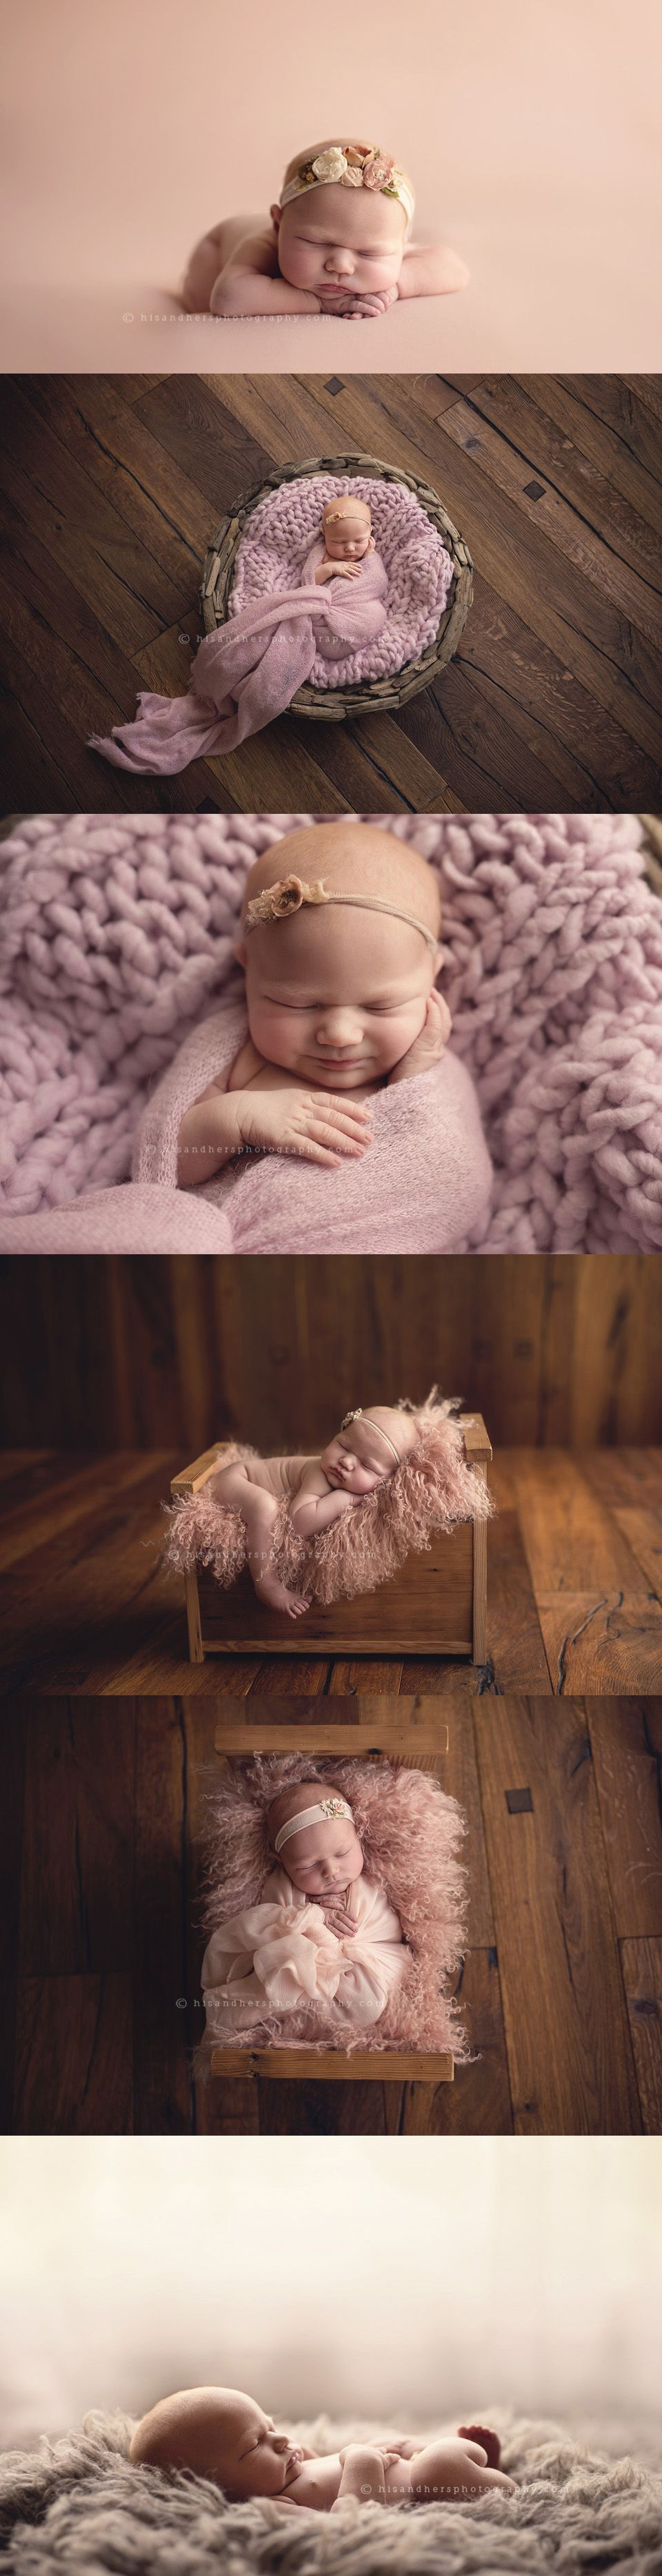 iowa newborn photographer best des moines baby photographer